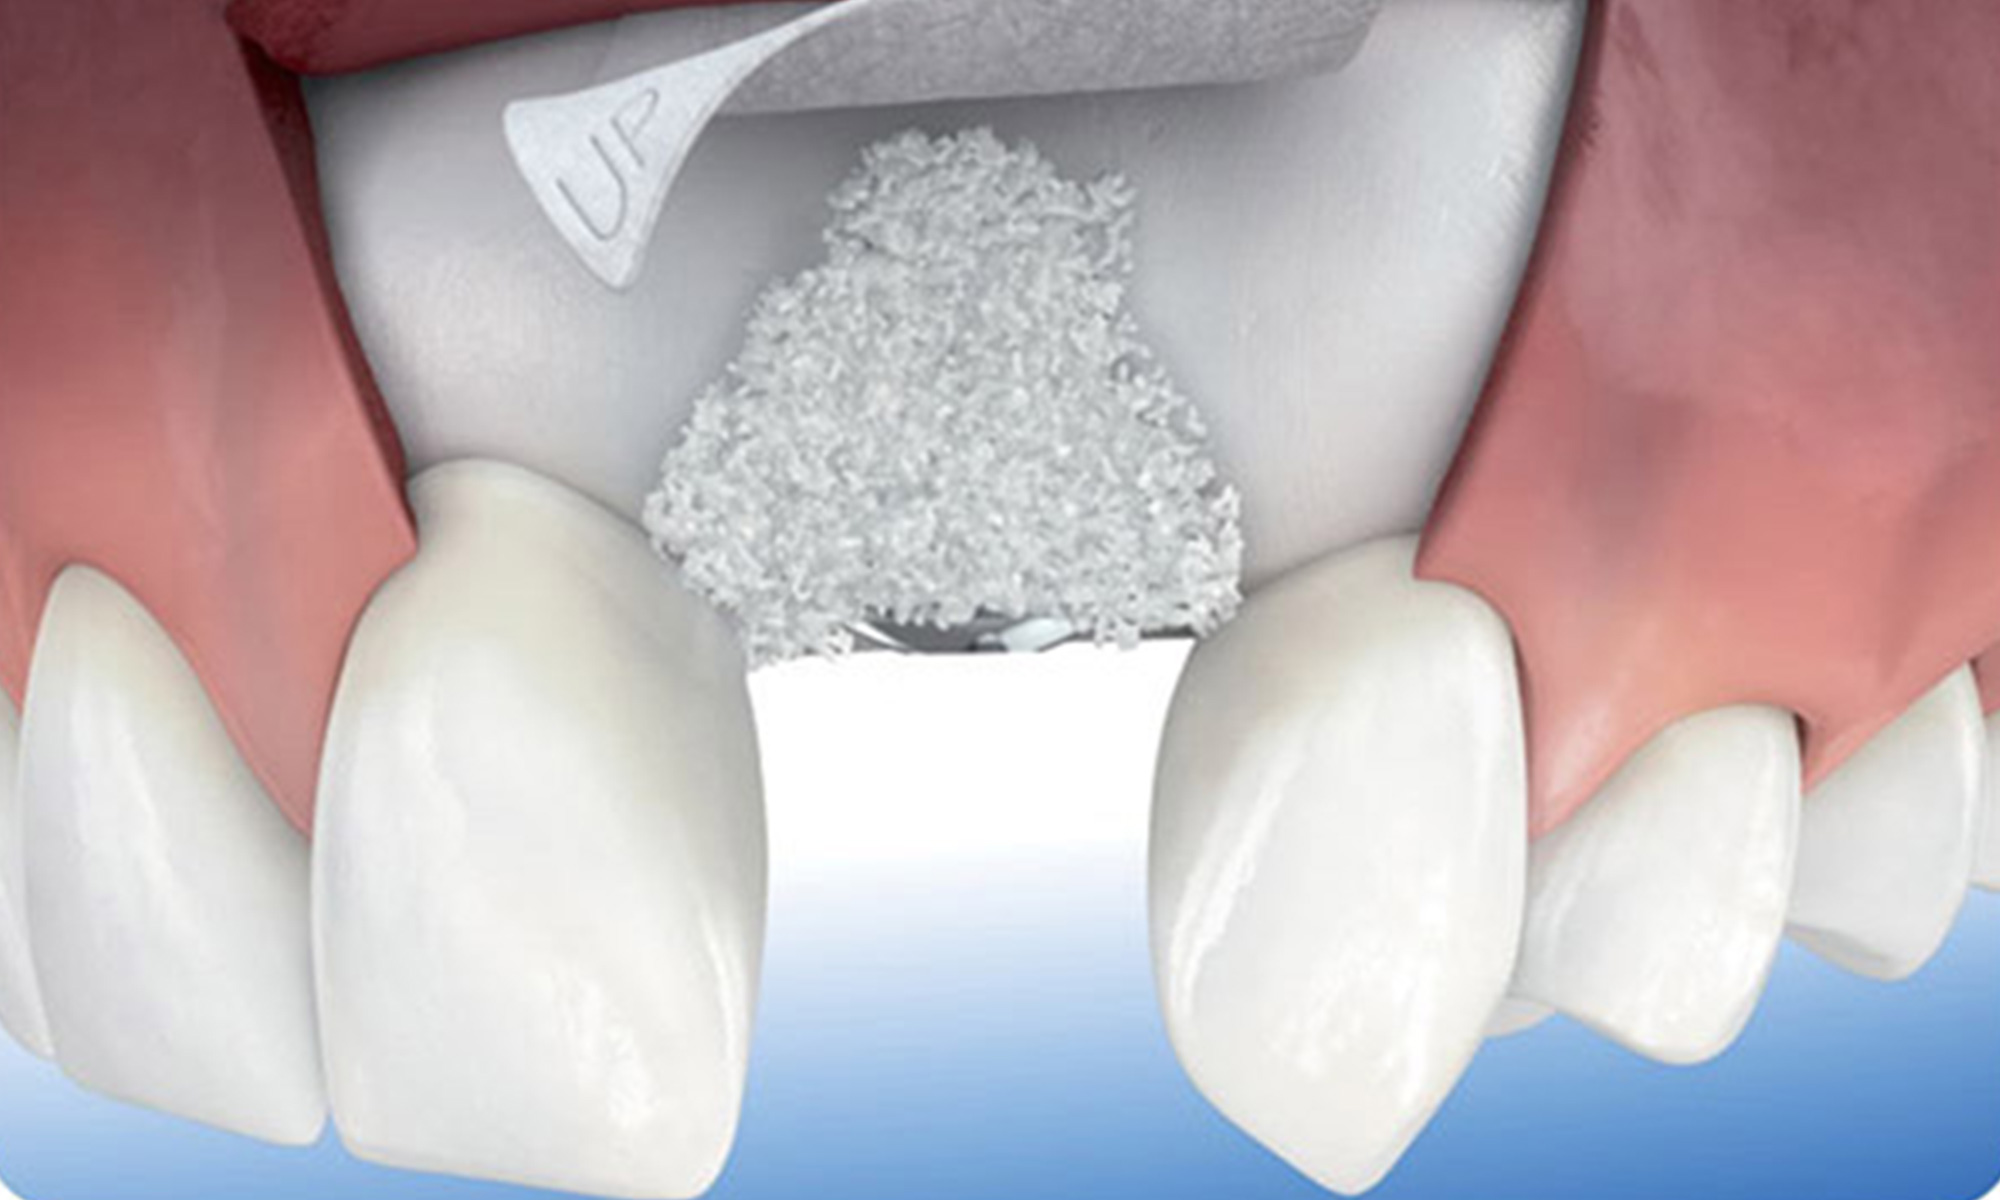 Thirroul Dental Studio Dentist North Wollongong Dentist 0304 Bone Grafting